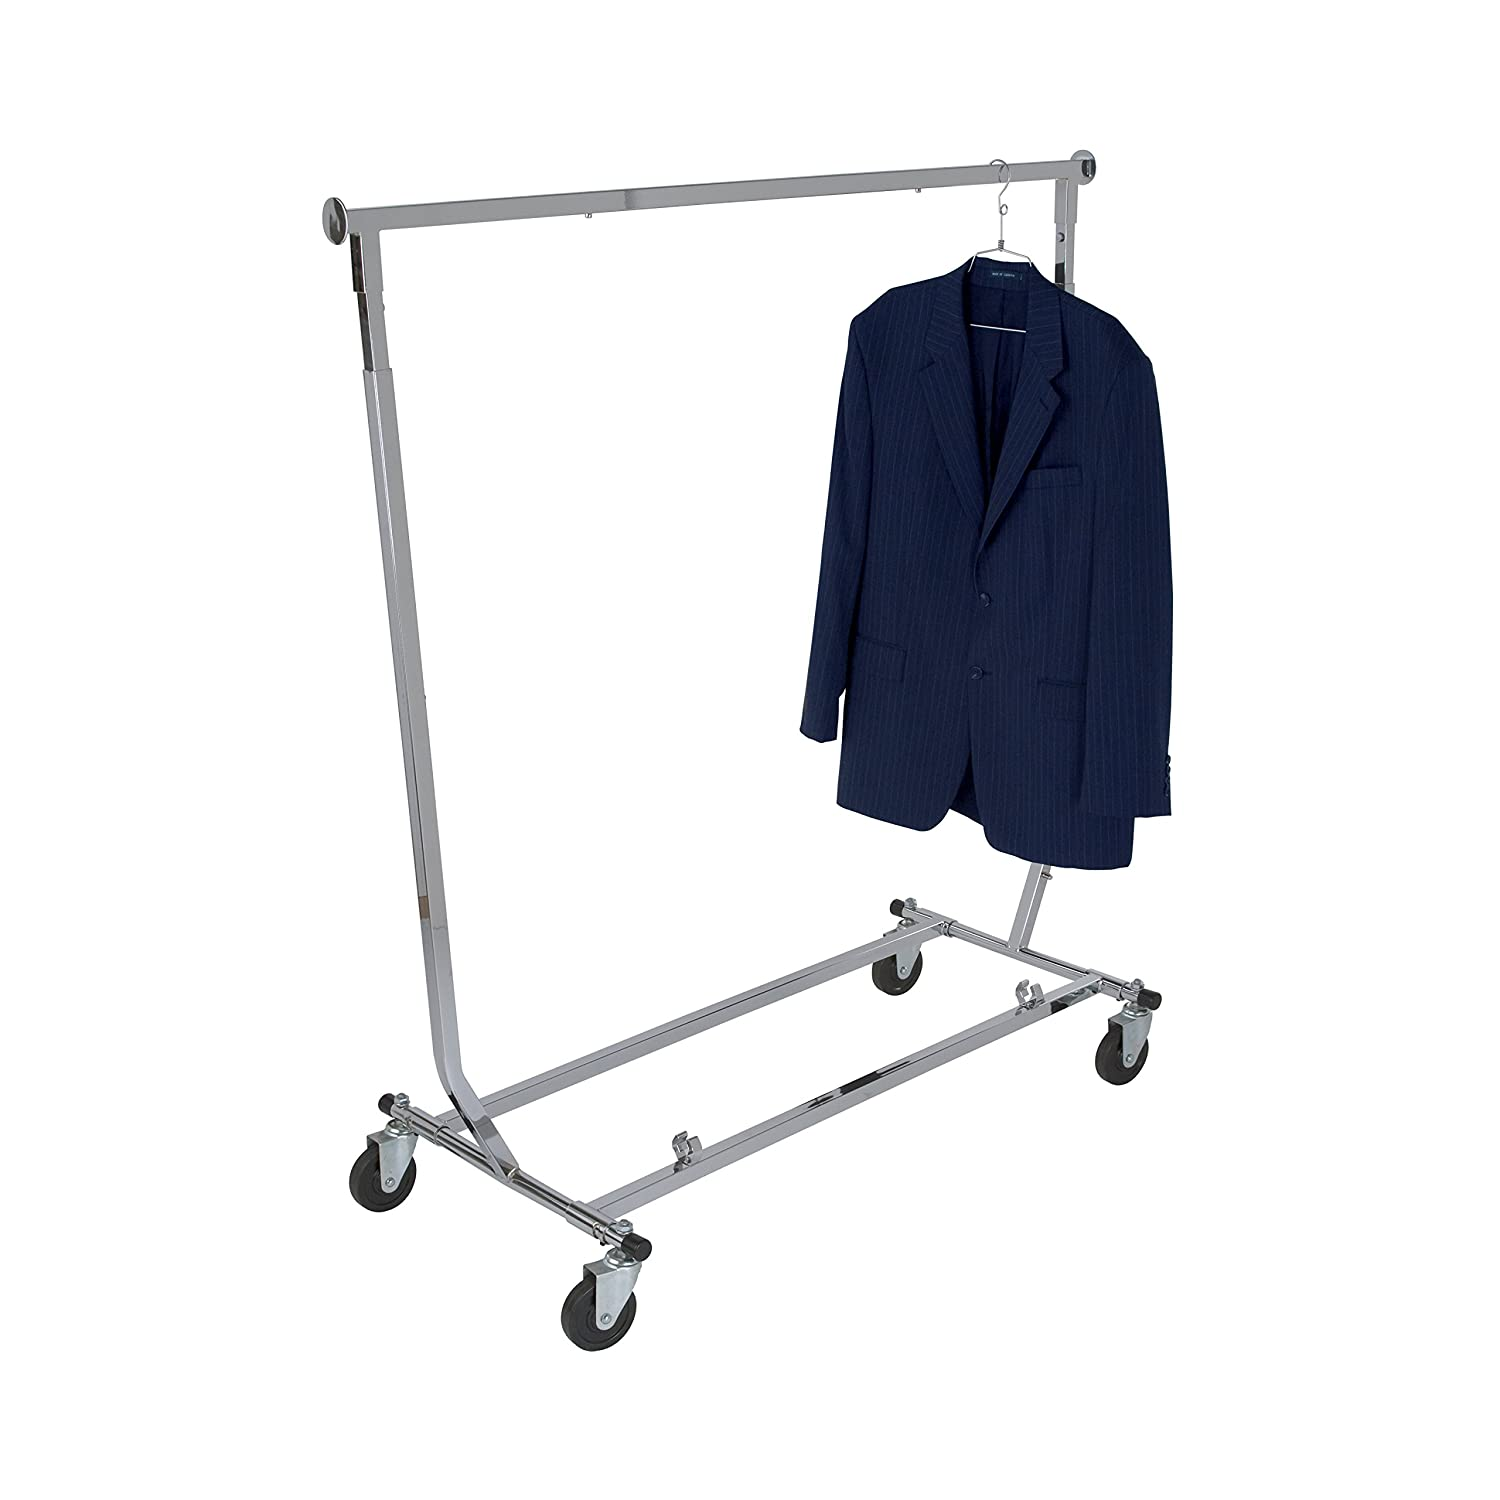 Chrome Square Tubing Rolling Rack Commercial Grade Clothing Display Econoco Collapsible Rolling Clothes Rack Collapsible Clothing Rack